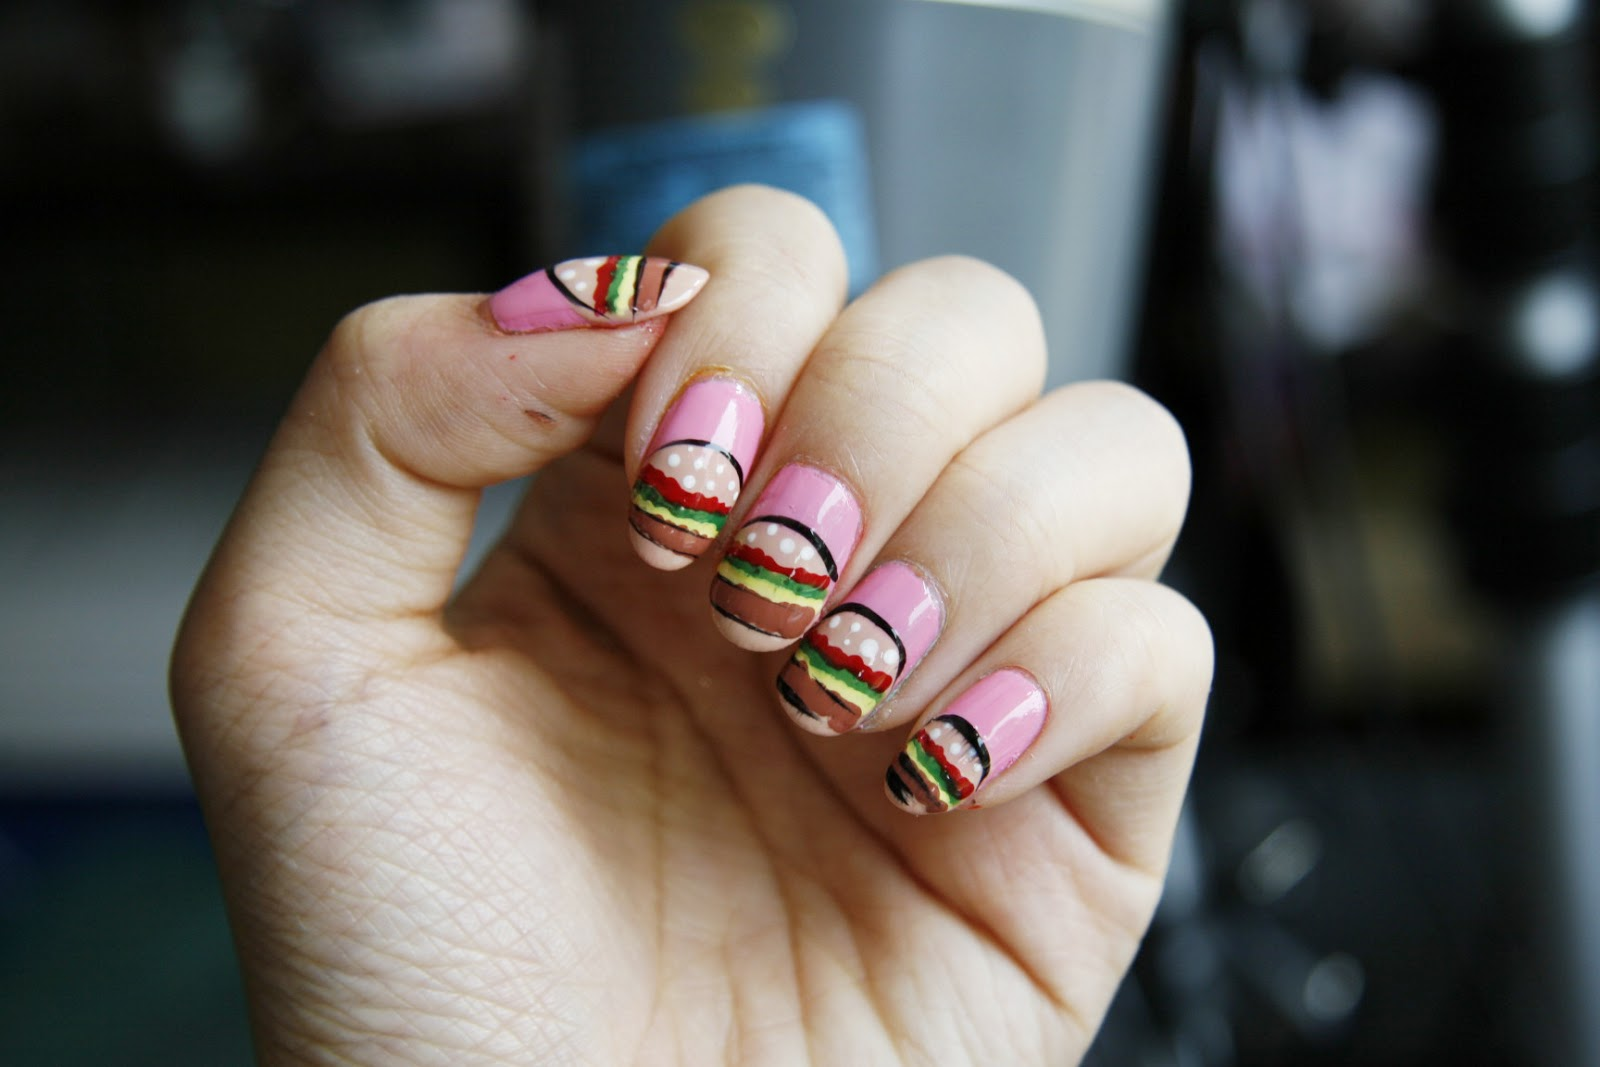 fun size beauty: Nail Art Challenge #OMD3Nails // 31 Nail Art Designs